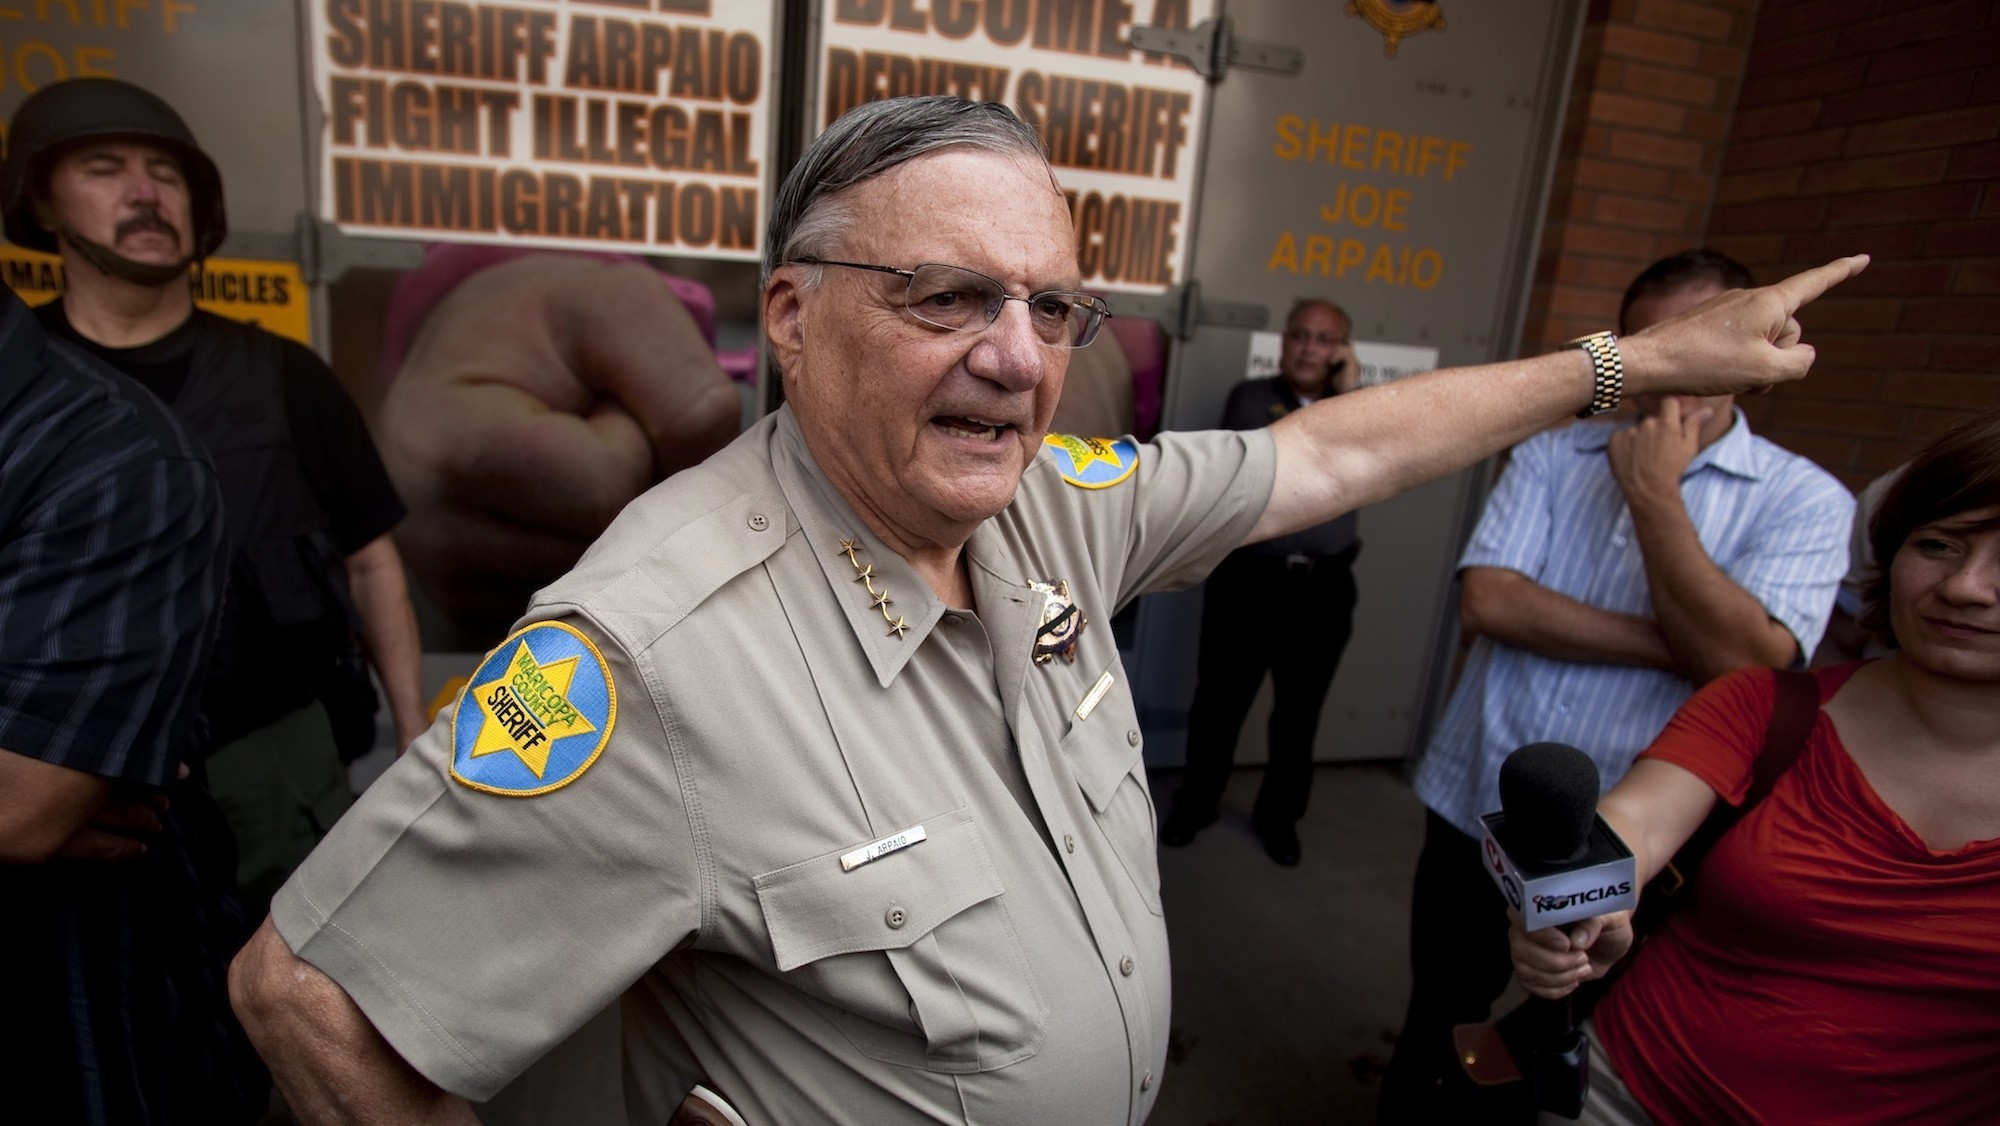 Fed-Up Judge Threatens 'America's Toughest Sheriff' Over Continued Racial Profiling